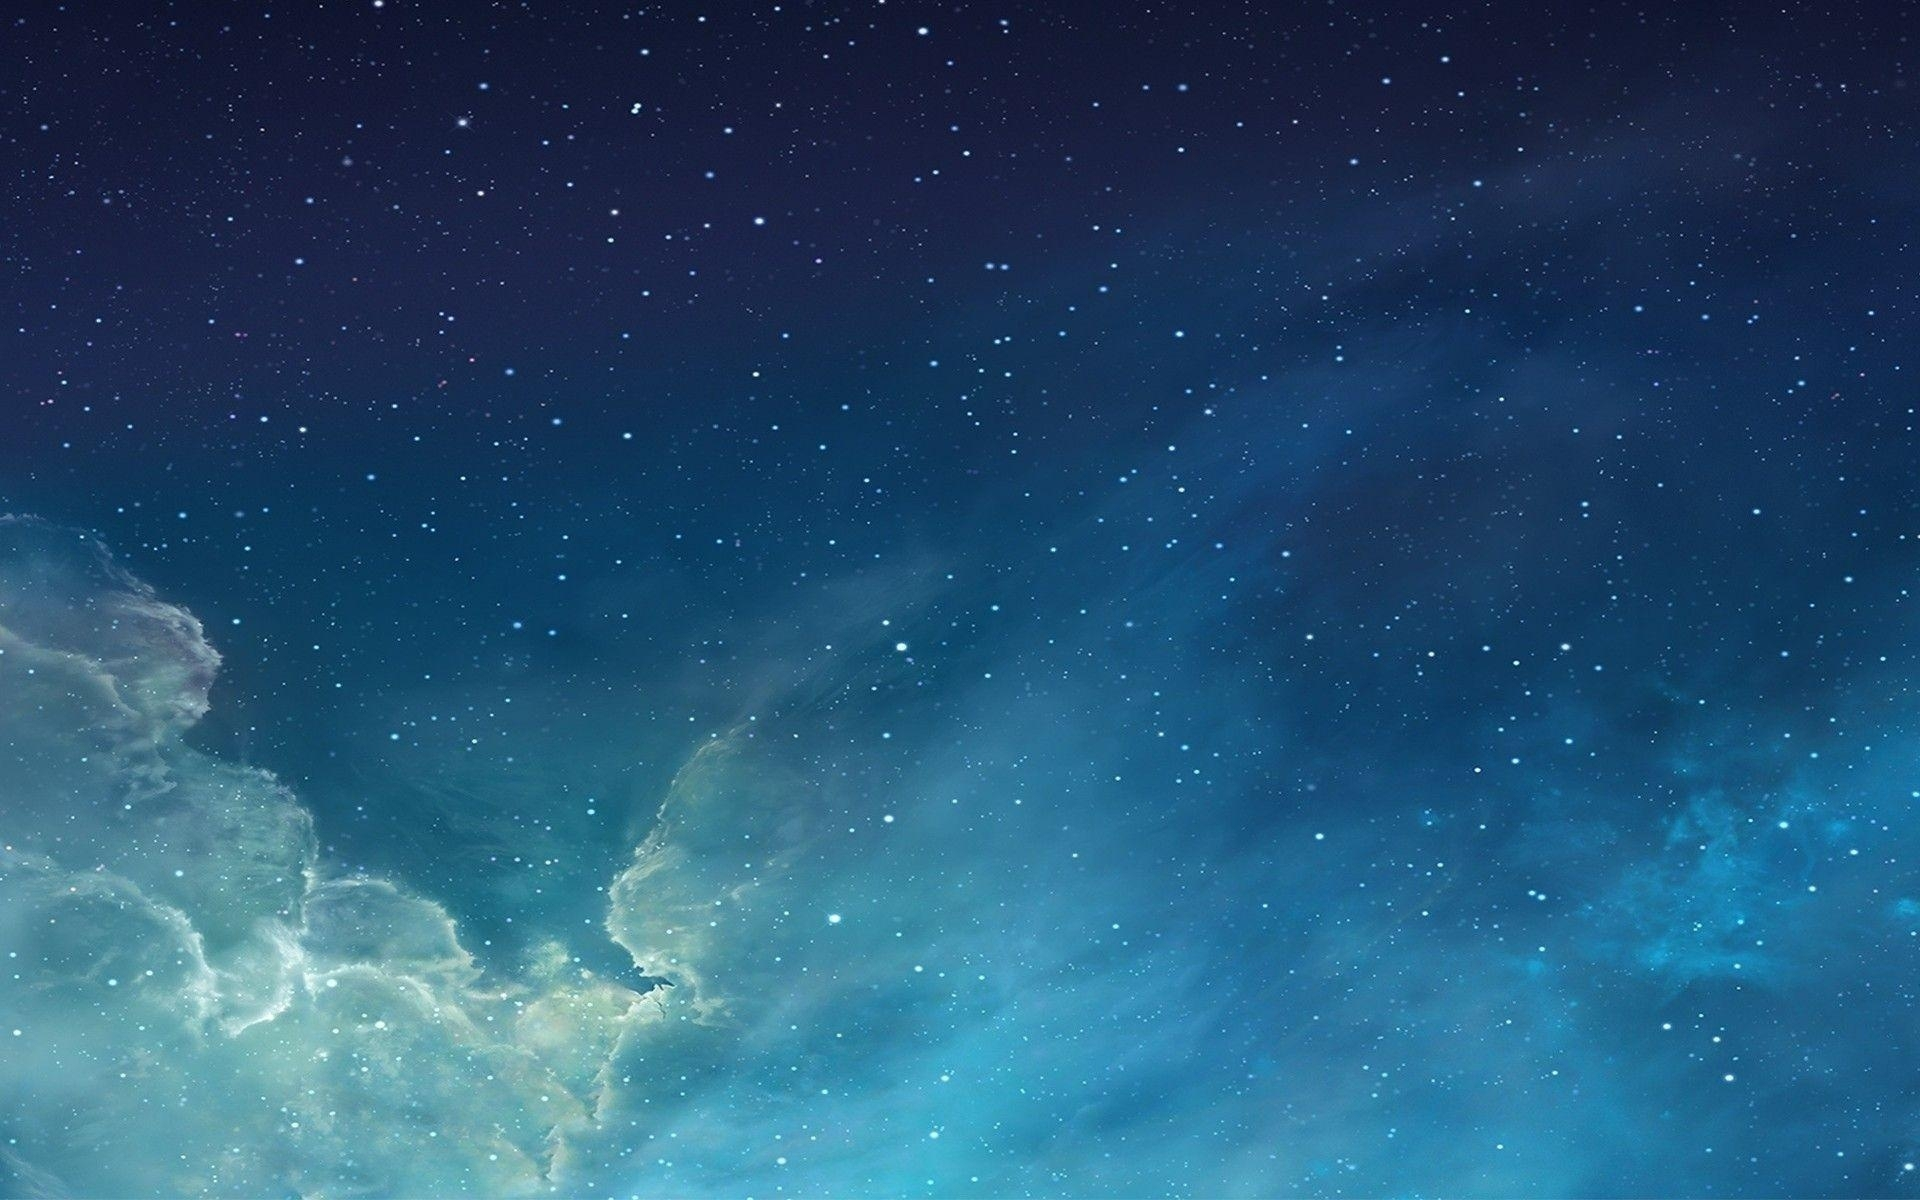 10 Top Star In The Sky Wallpaper FULL HD 1920×1080 For PC Background